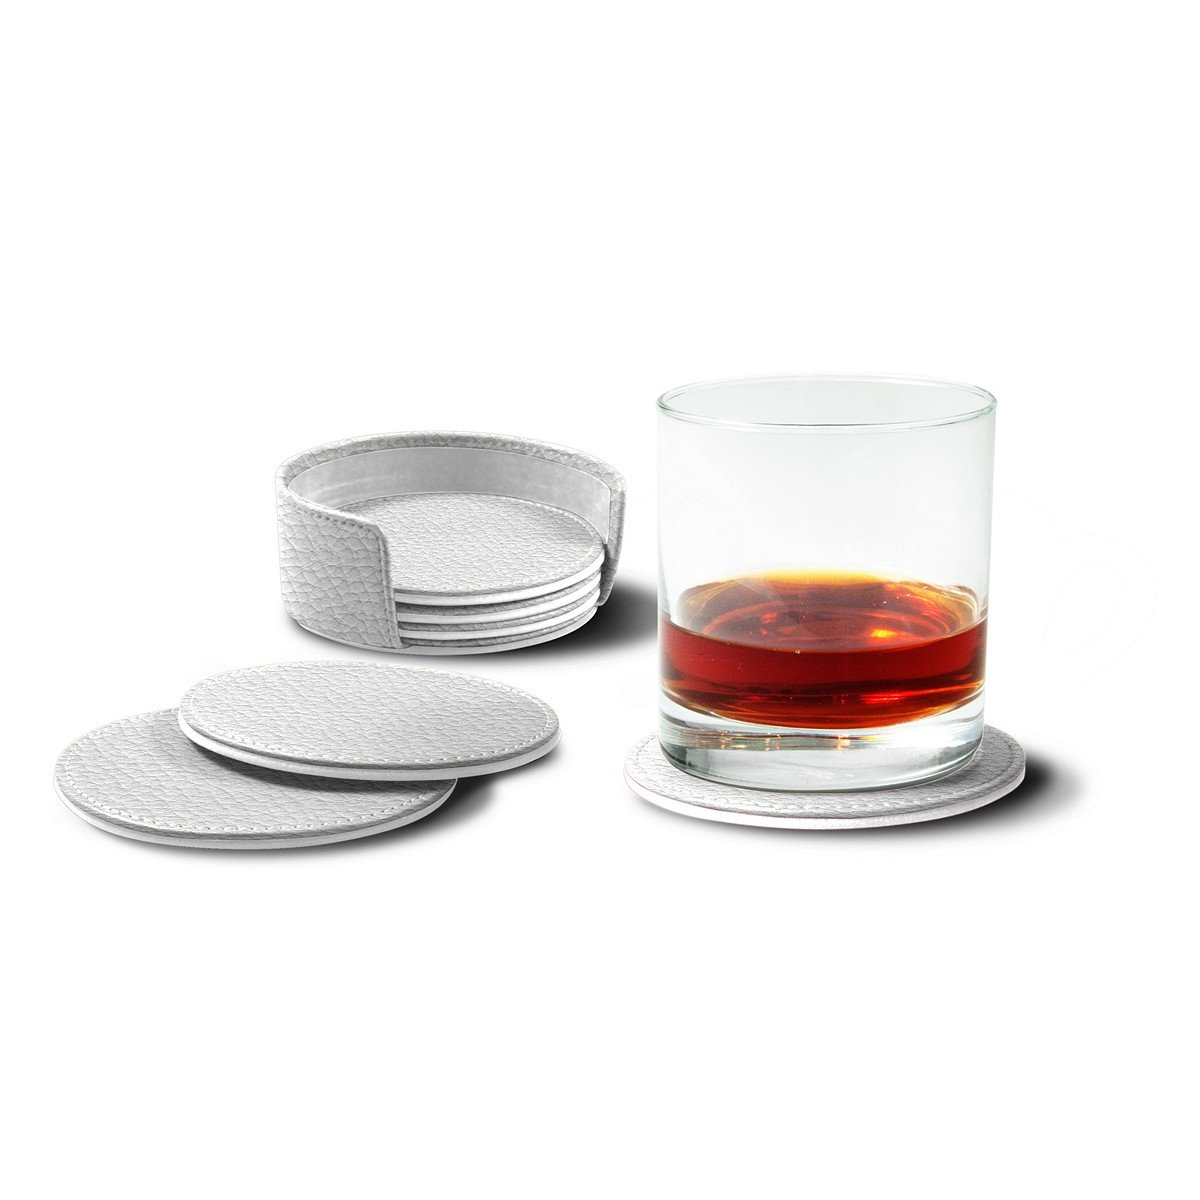 Lucrin - Set of 6 Round Real Leather Coasters with Coaster Holder - White - Granulated Leather